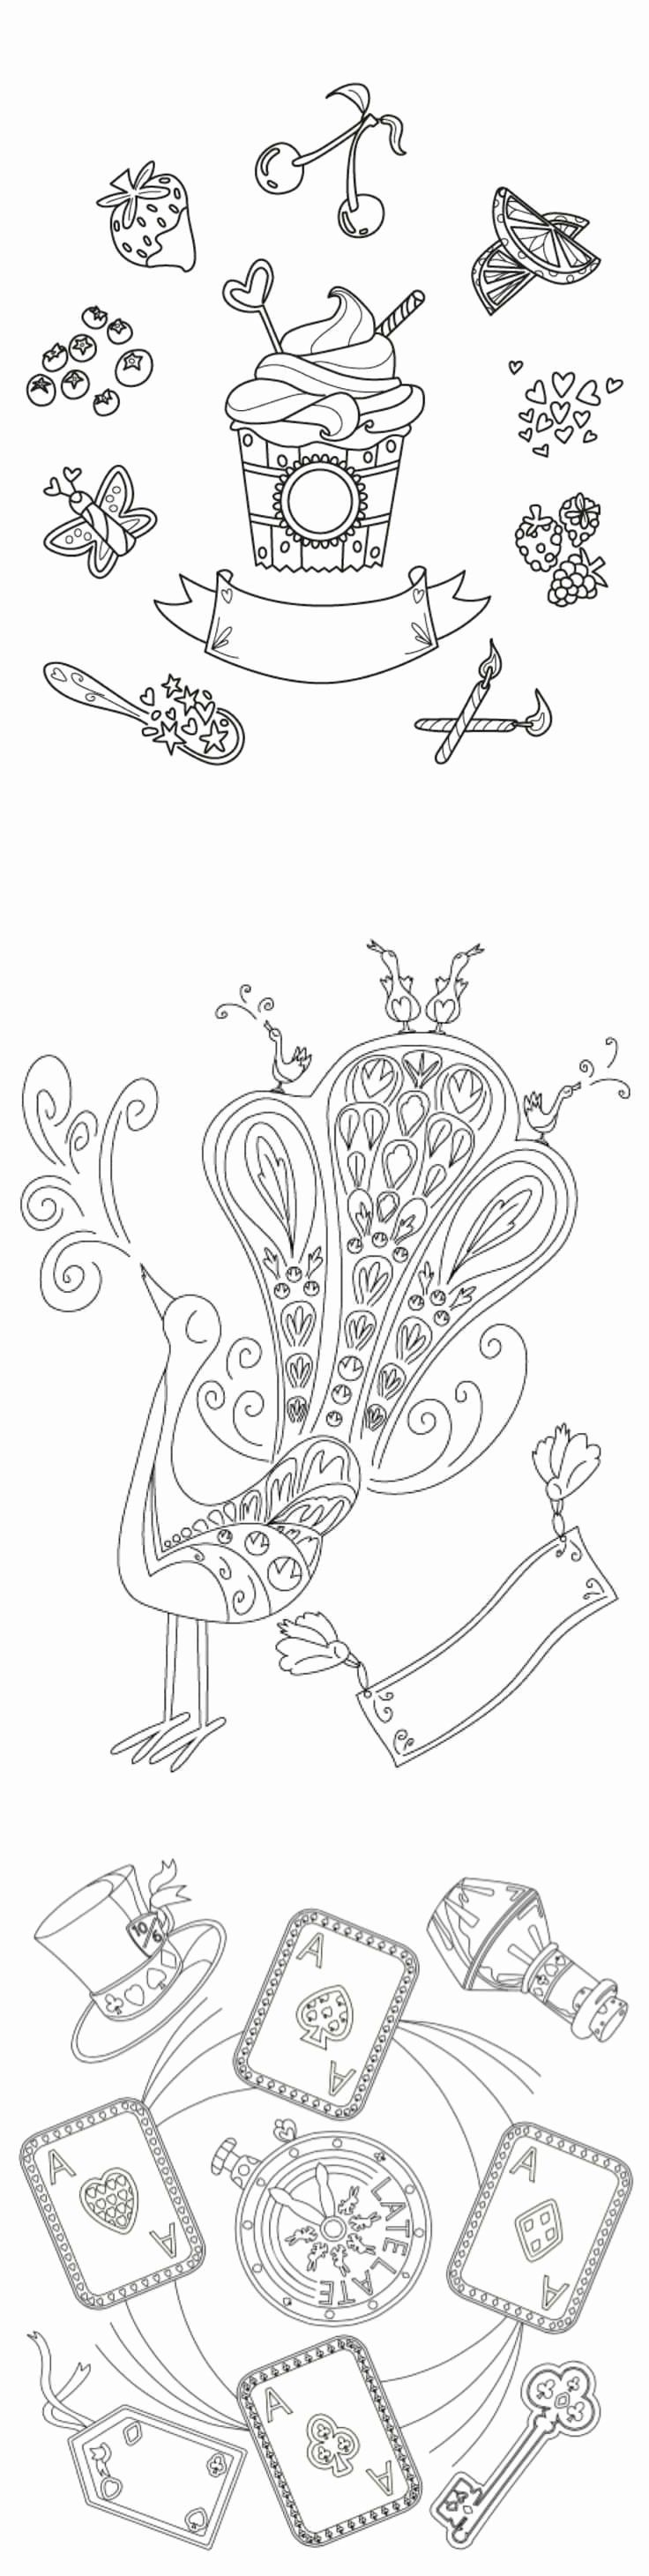 State Bird Coloring Page Lovely Pennsylvania State Bird Flower and